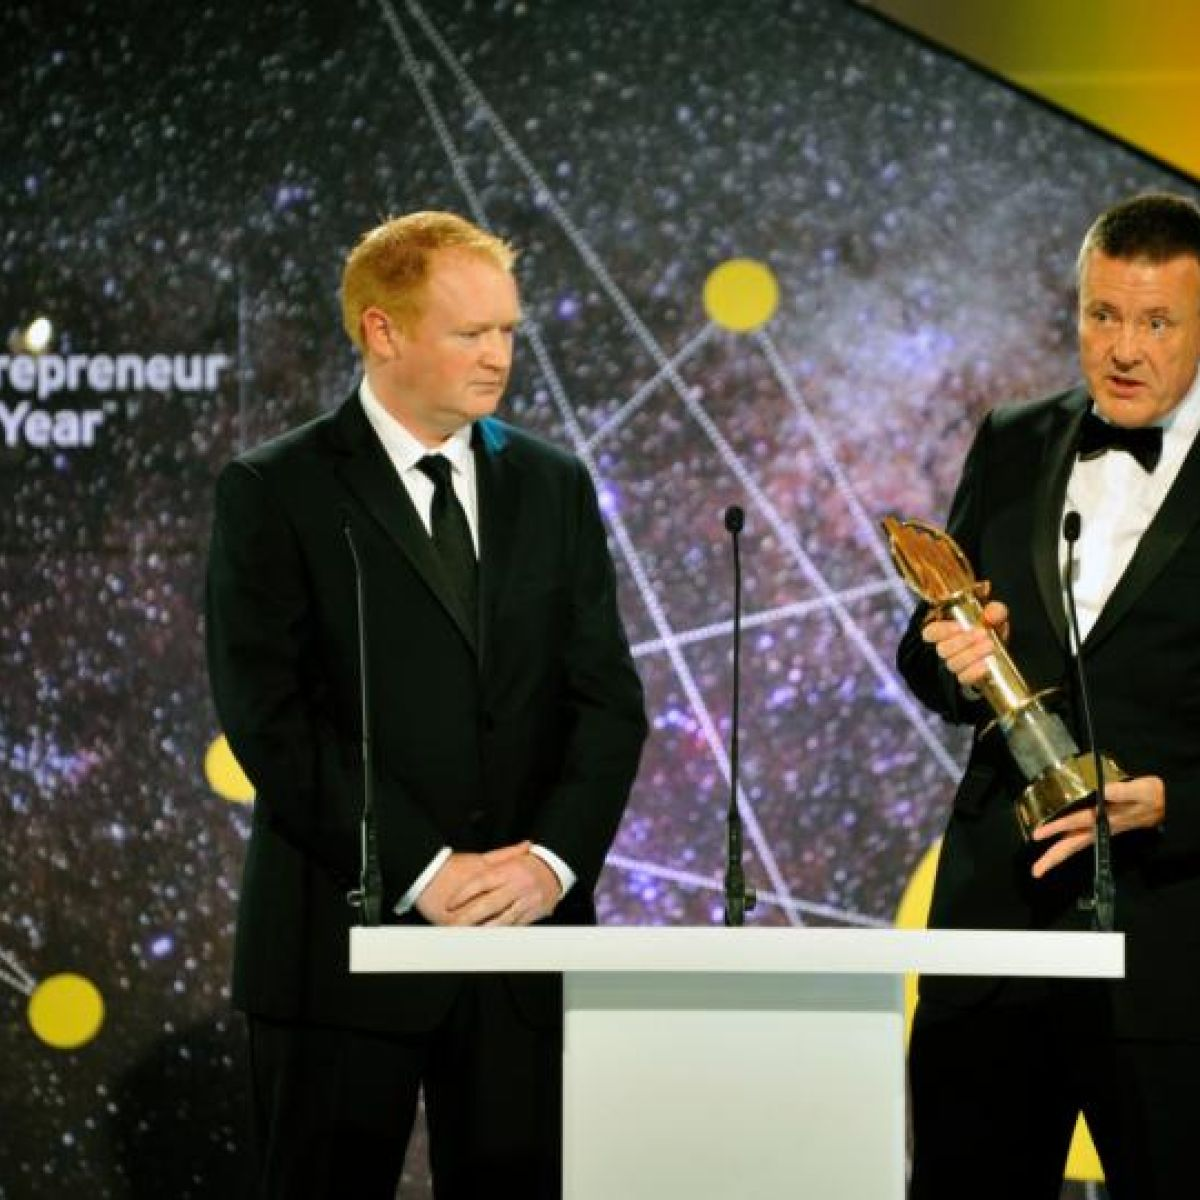 Barracuda FX wins emerging category at EY Entrepreneur of